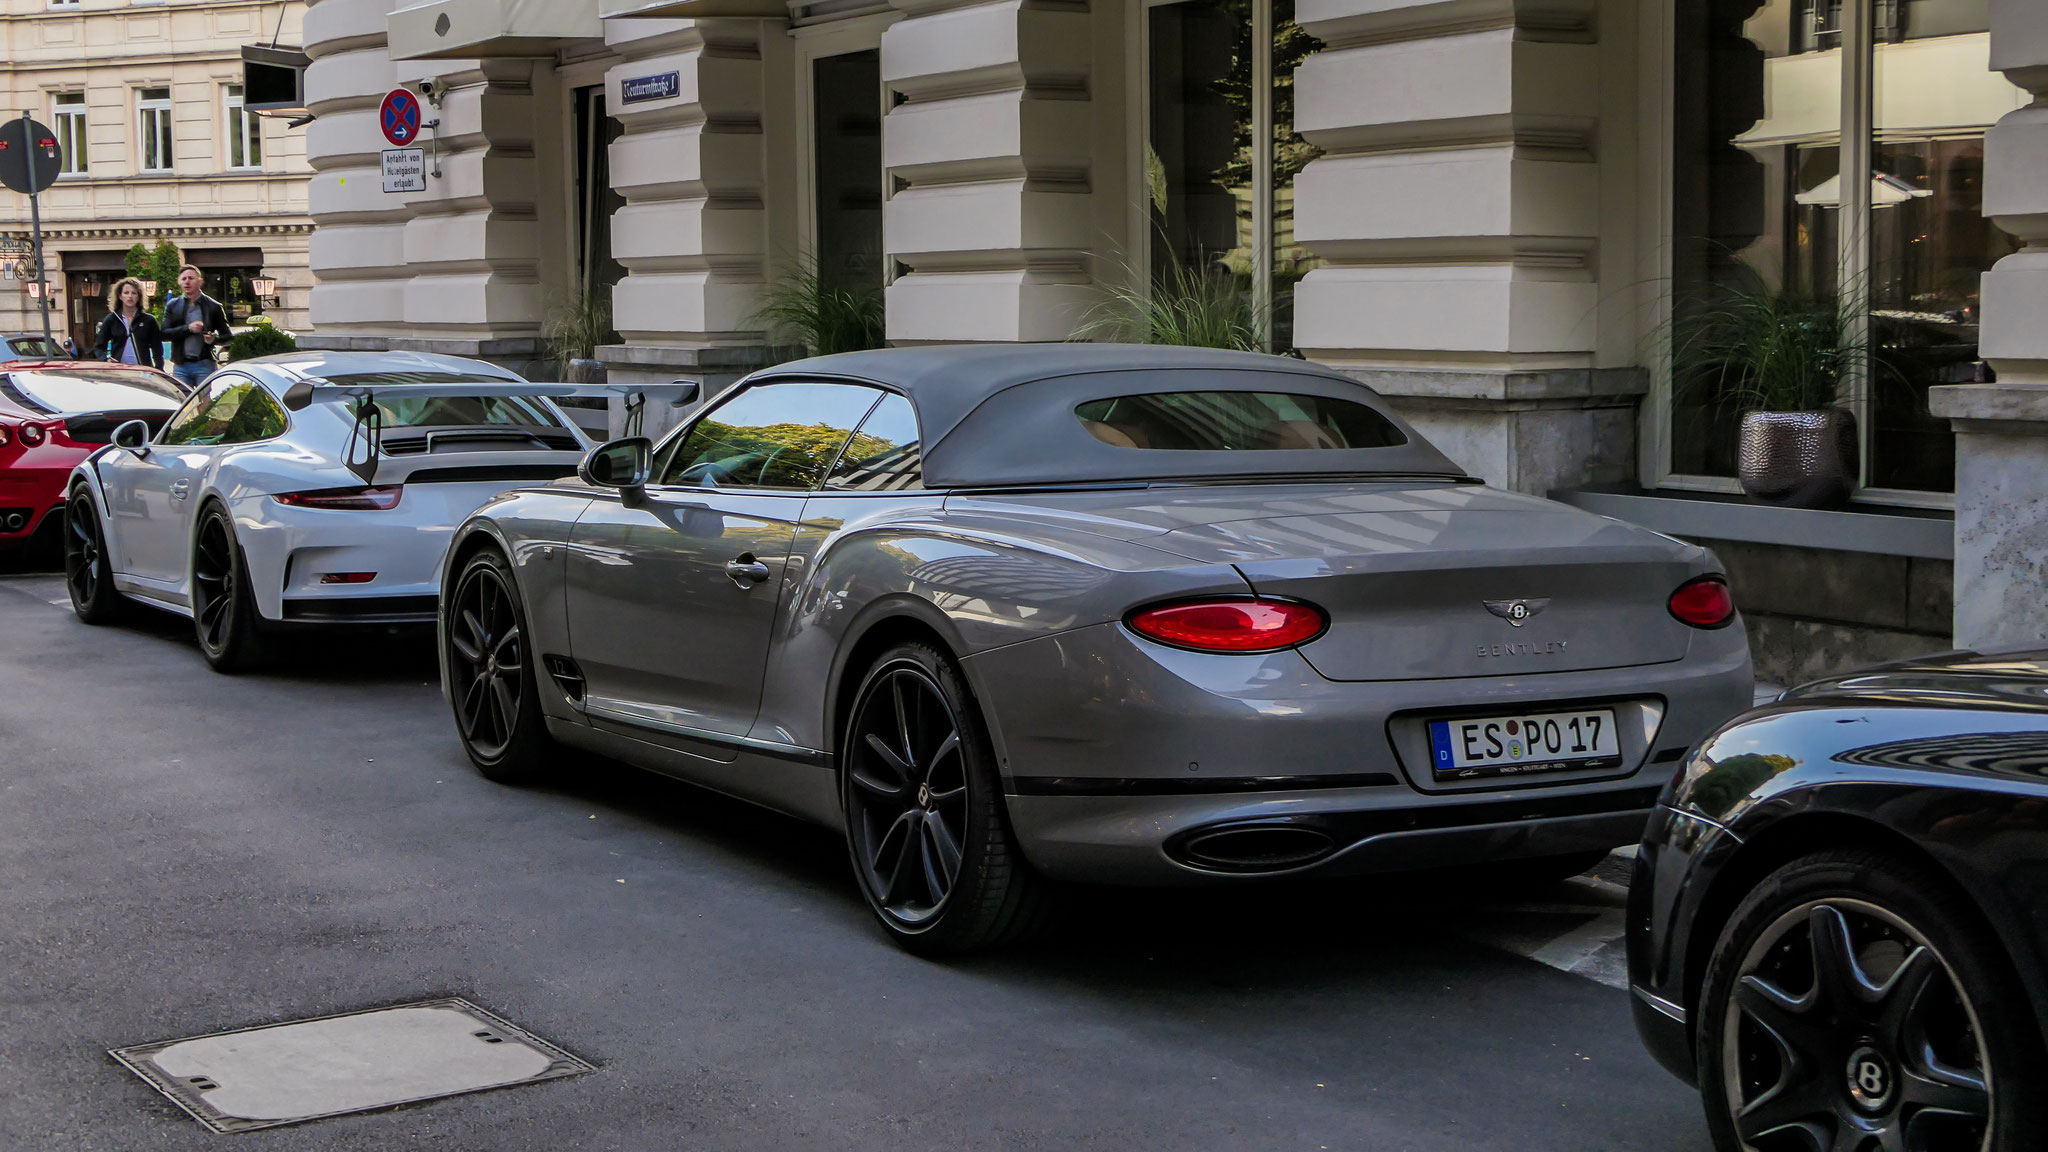 Bentley Continental GTC - ES-PO-17